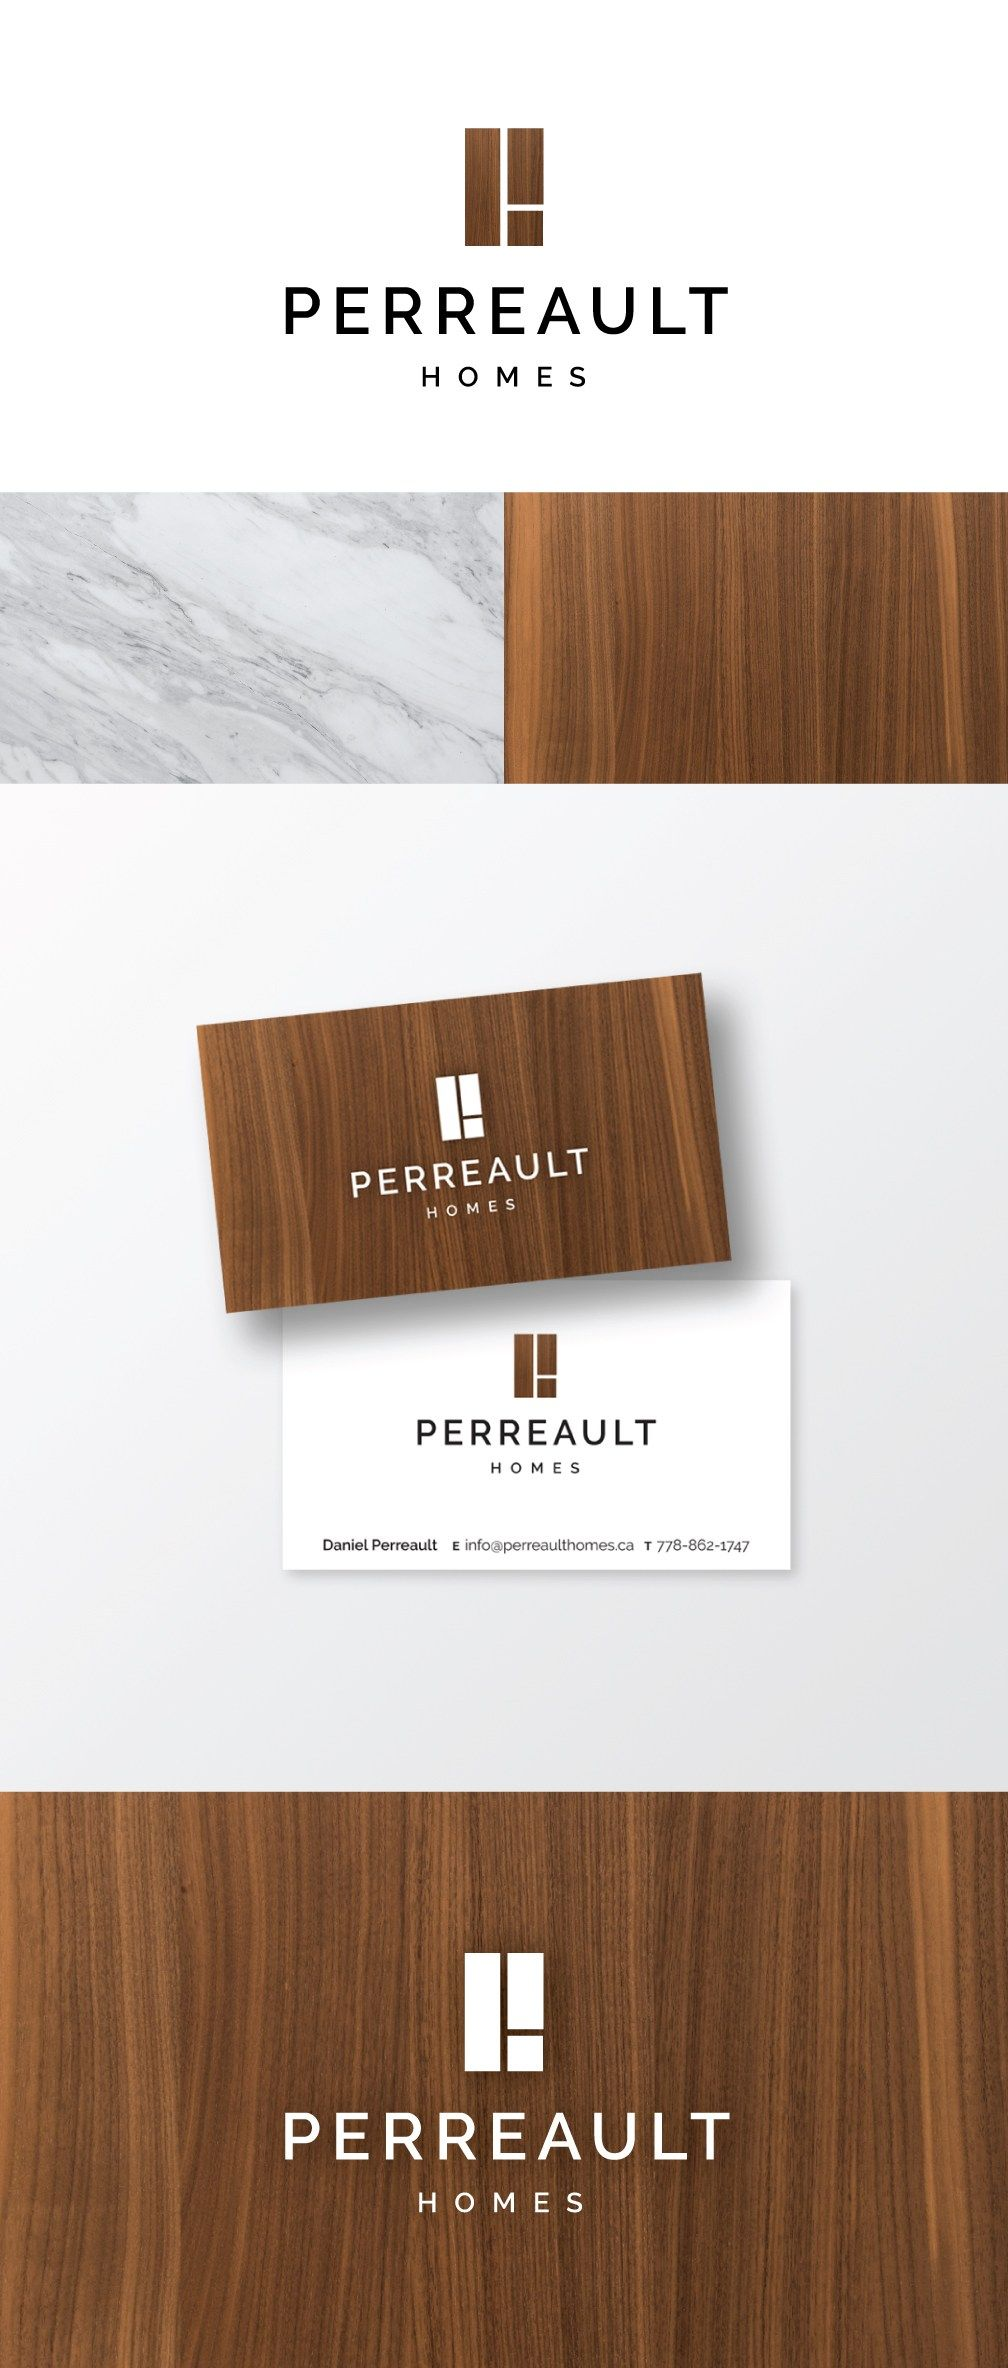 Logo design for Perreault Homes new brand, using a walnut veneer and ...